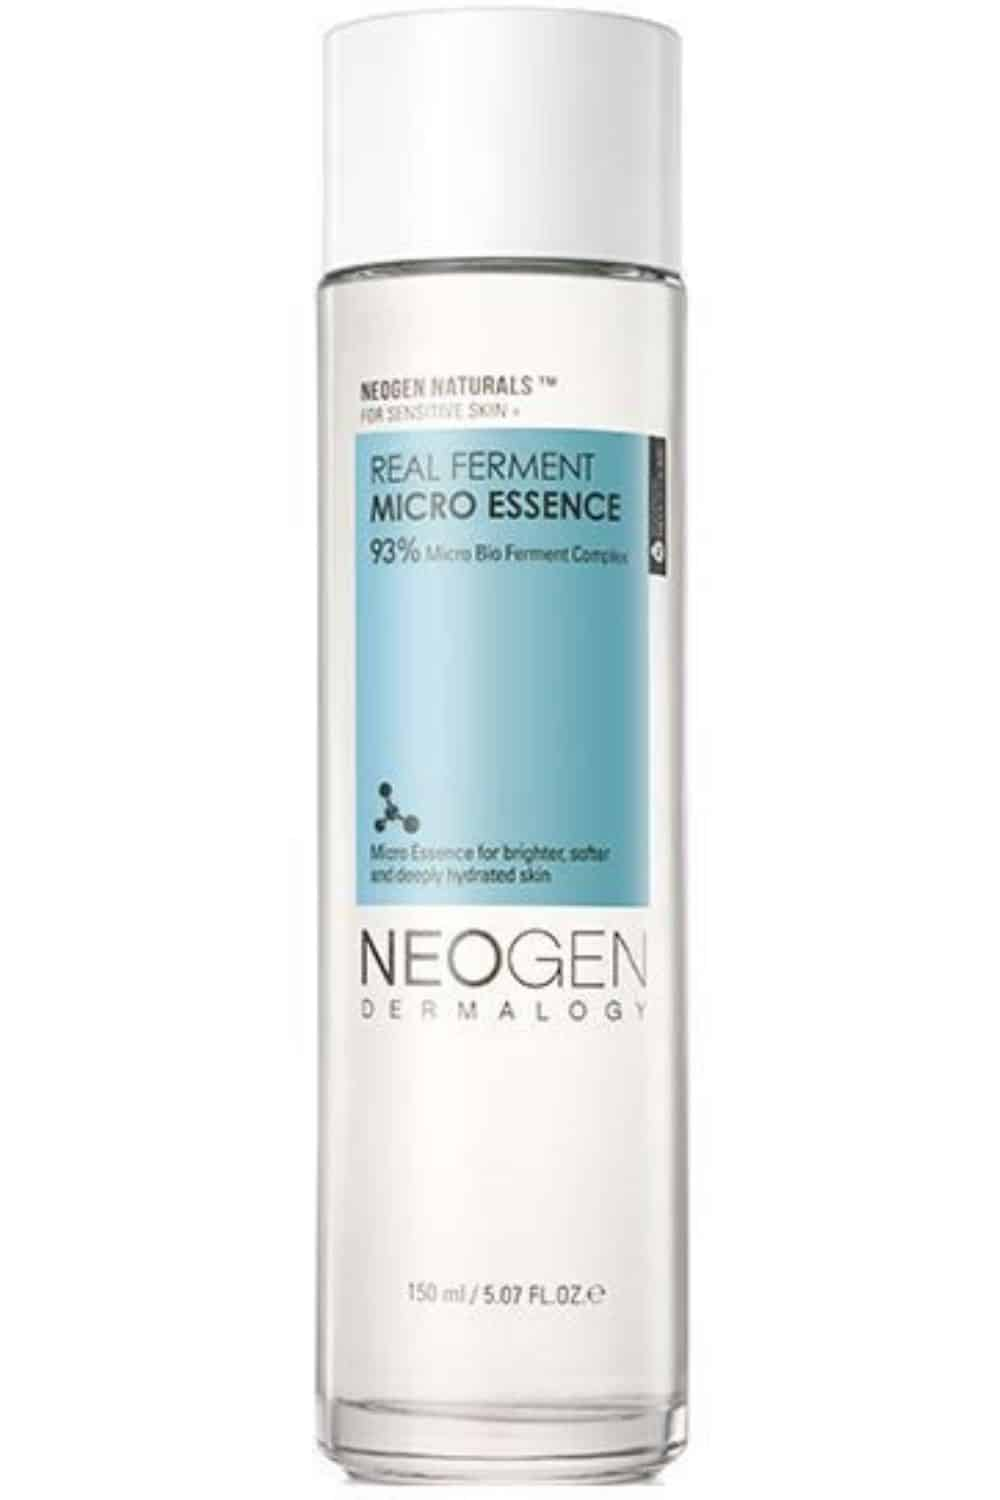 how to use licorice root for skin Neogen Essence